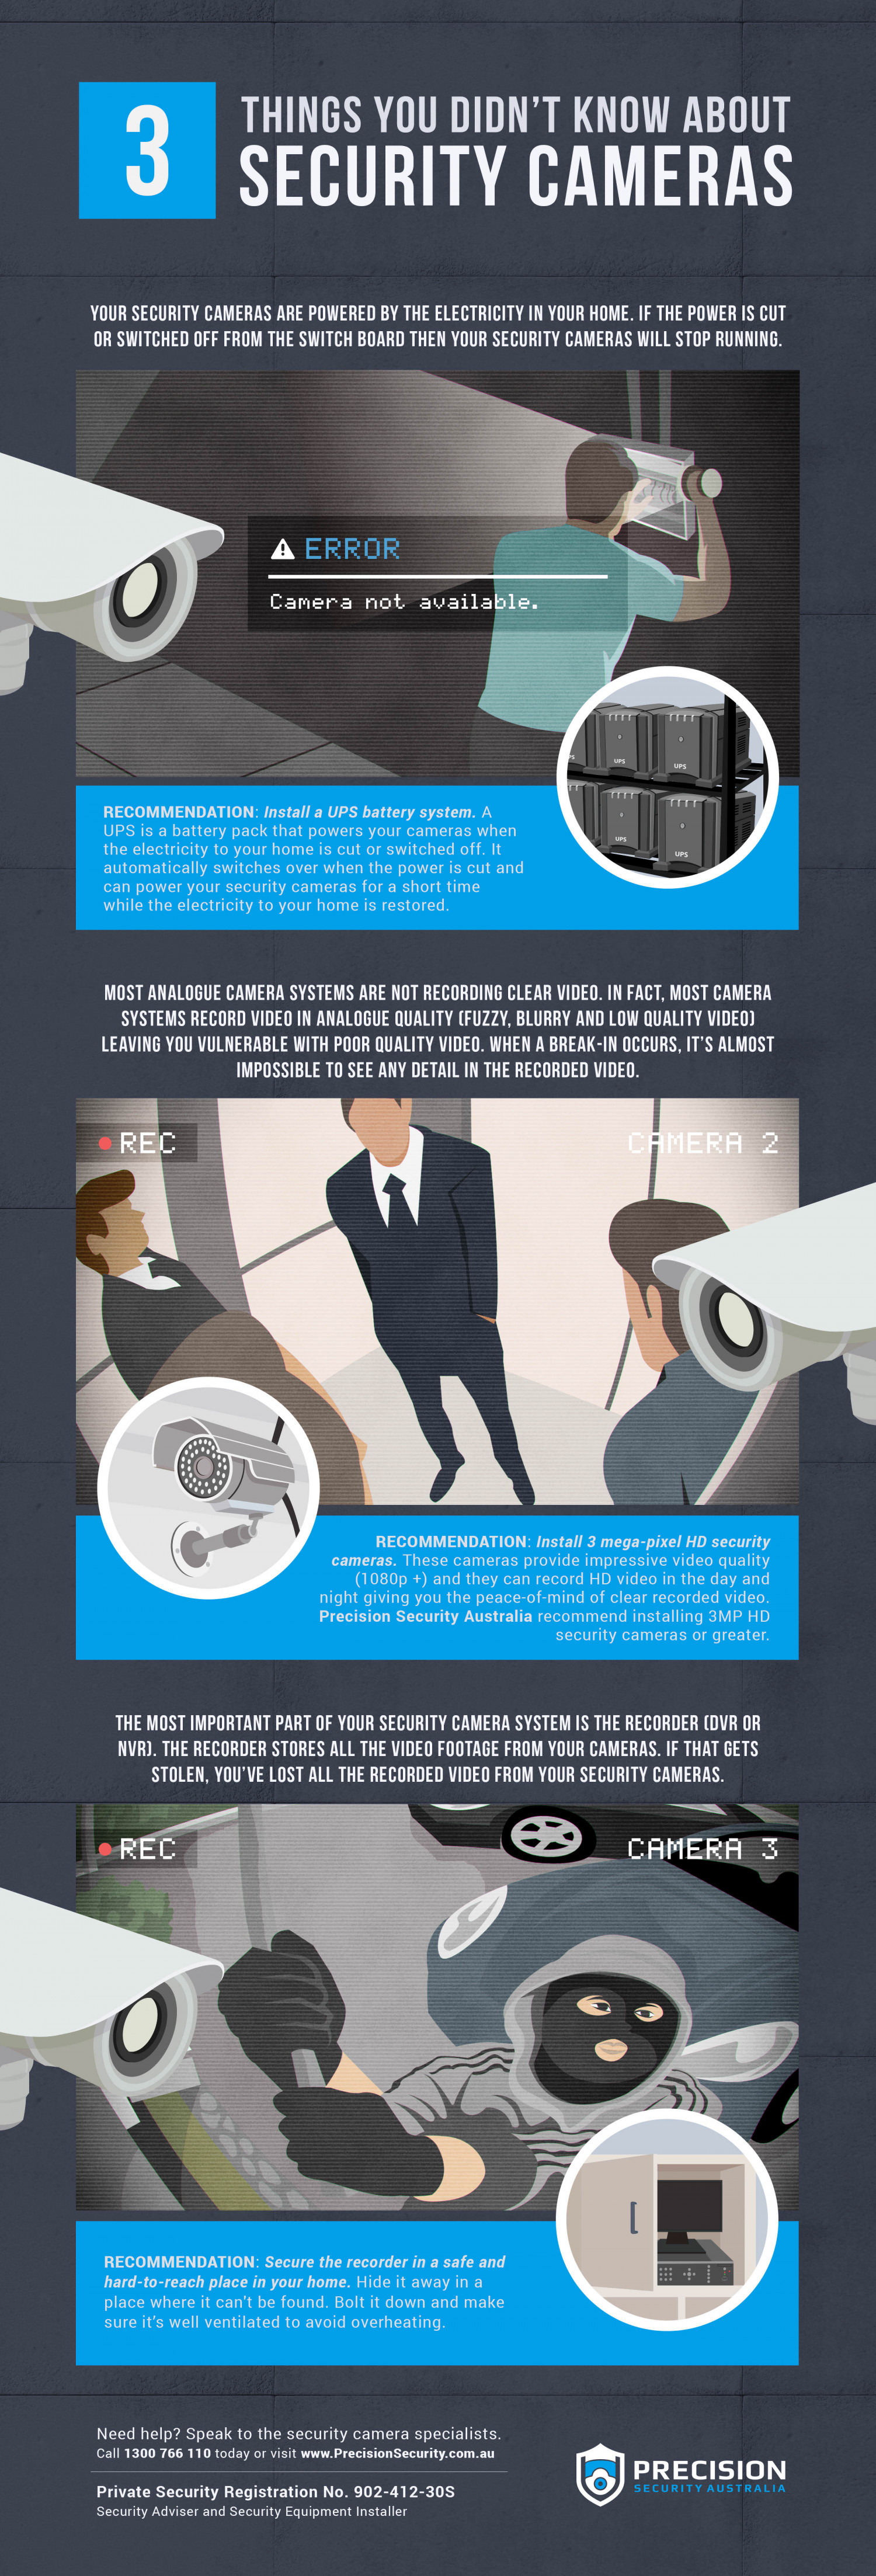 Things You Didn't Know About Security Cameras Infographic